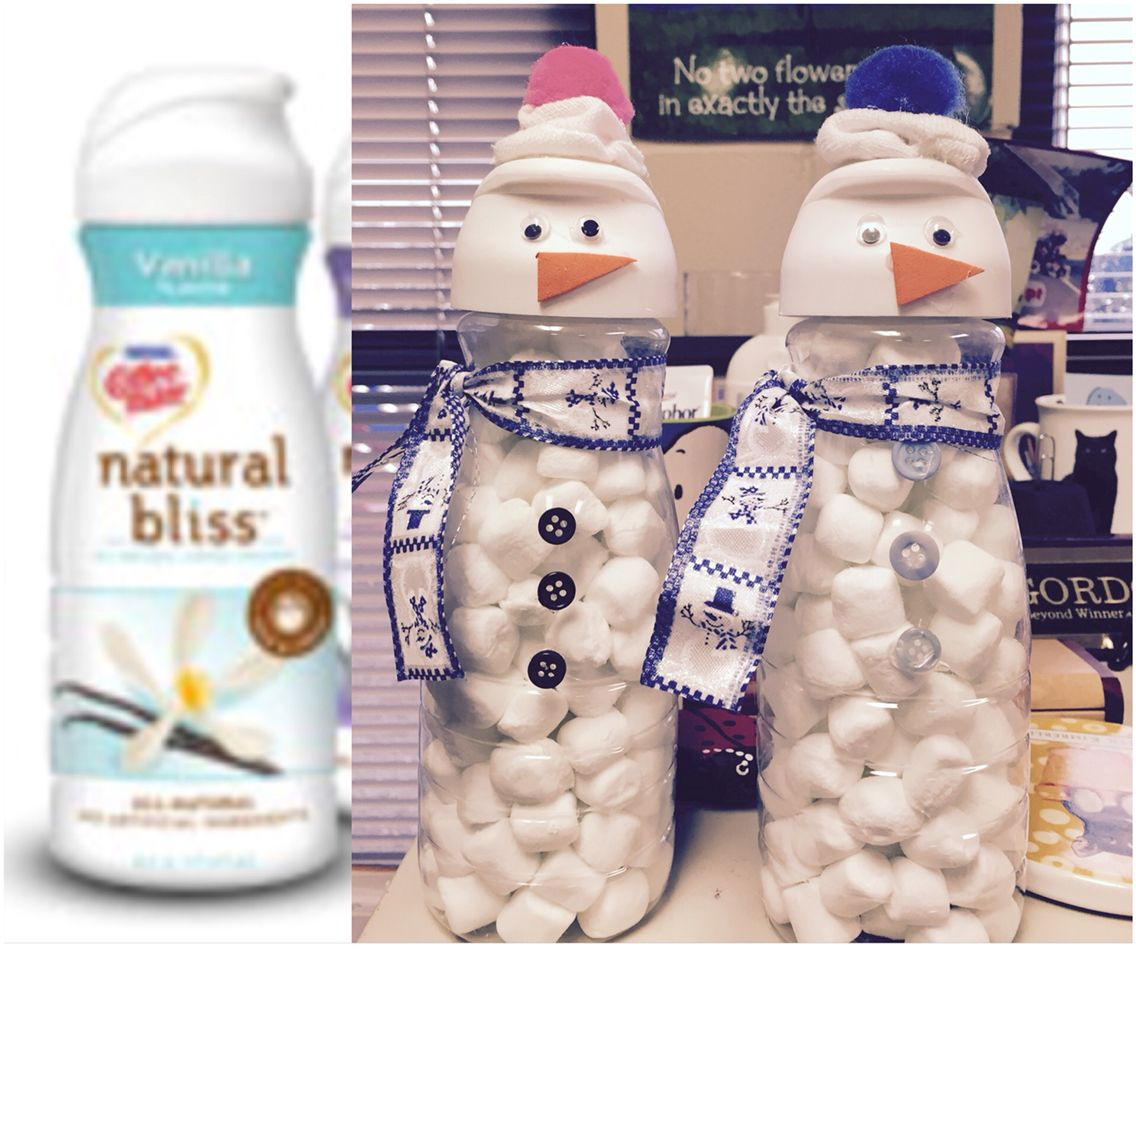 Recycled coffee creamer bottles used to make a snowman snack holder for little ones.